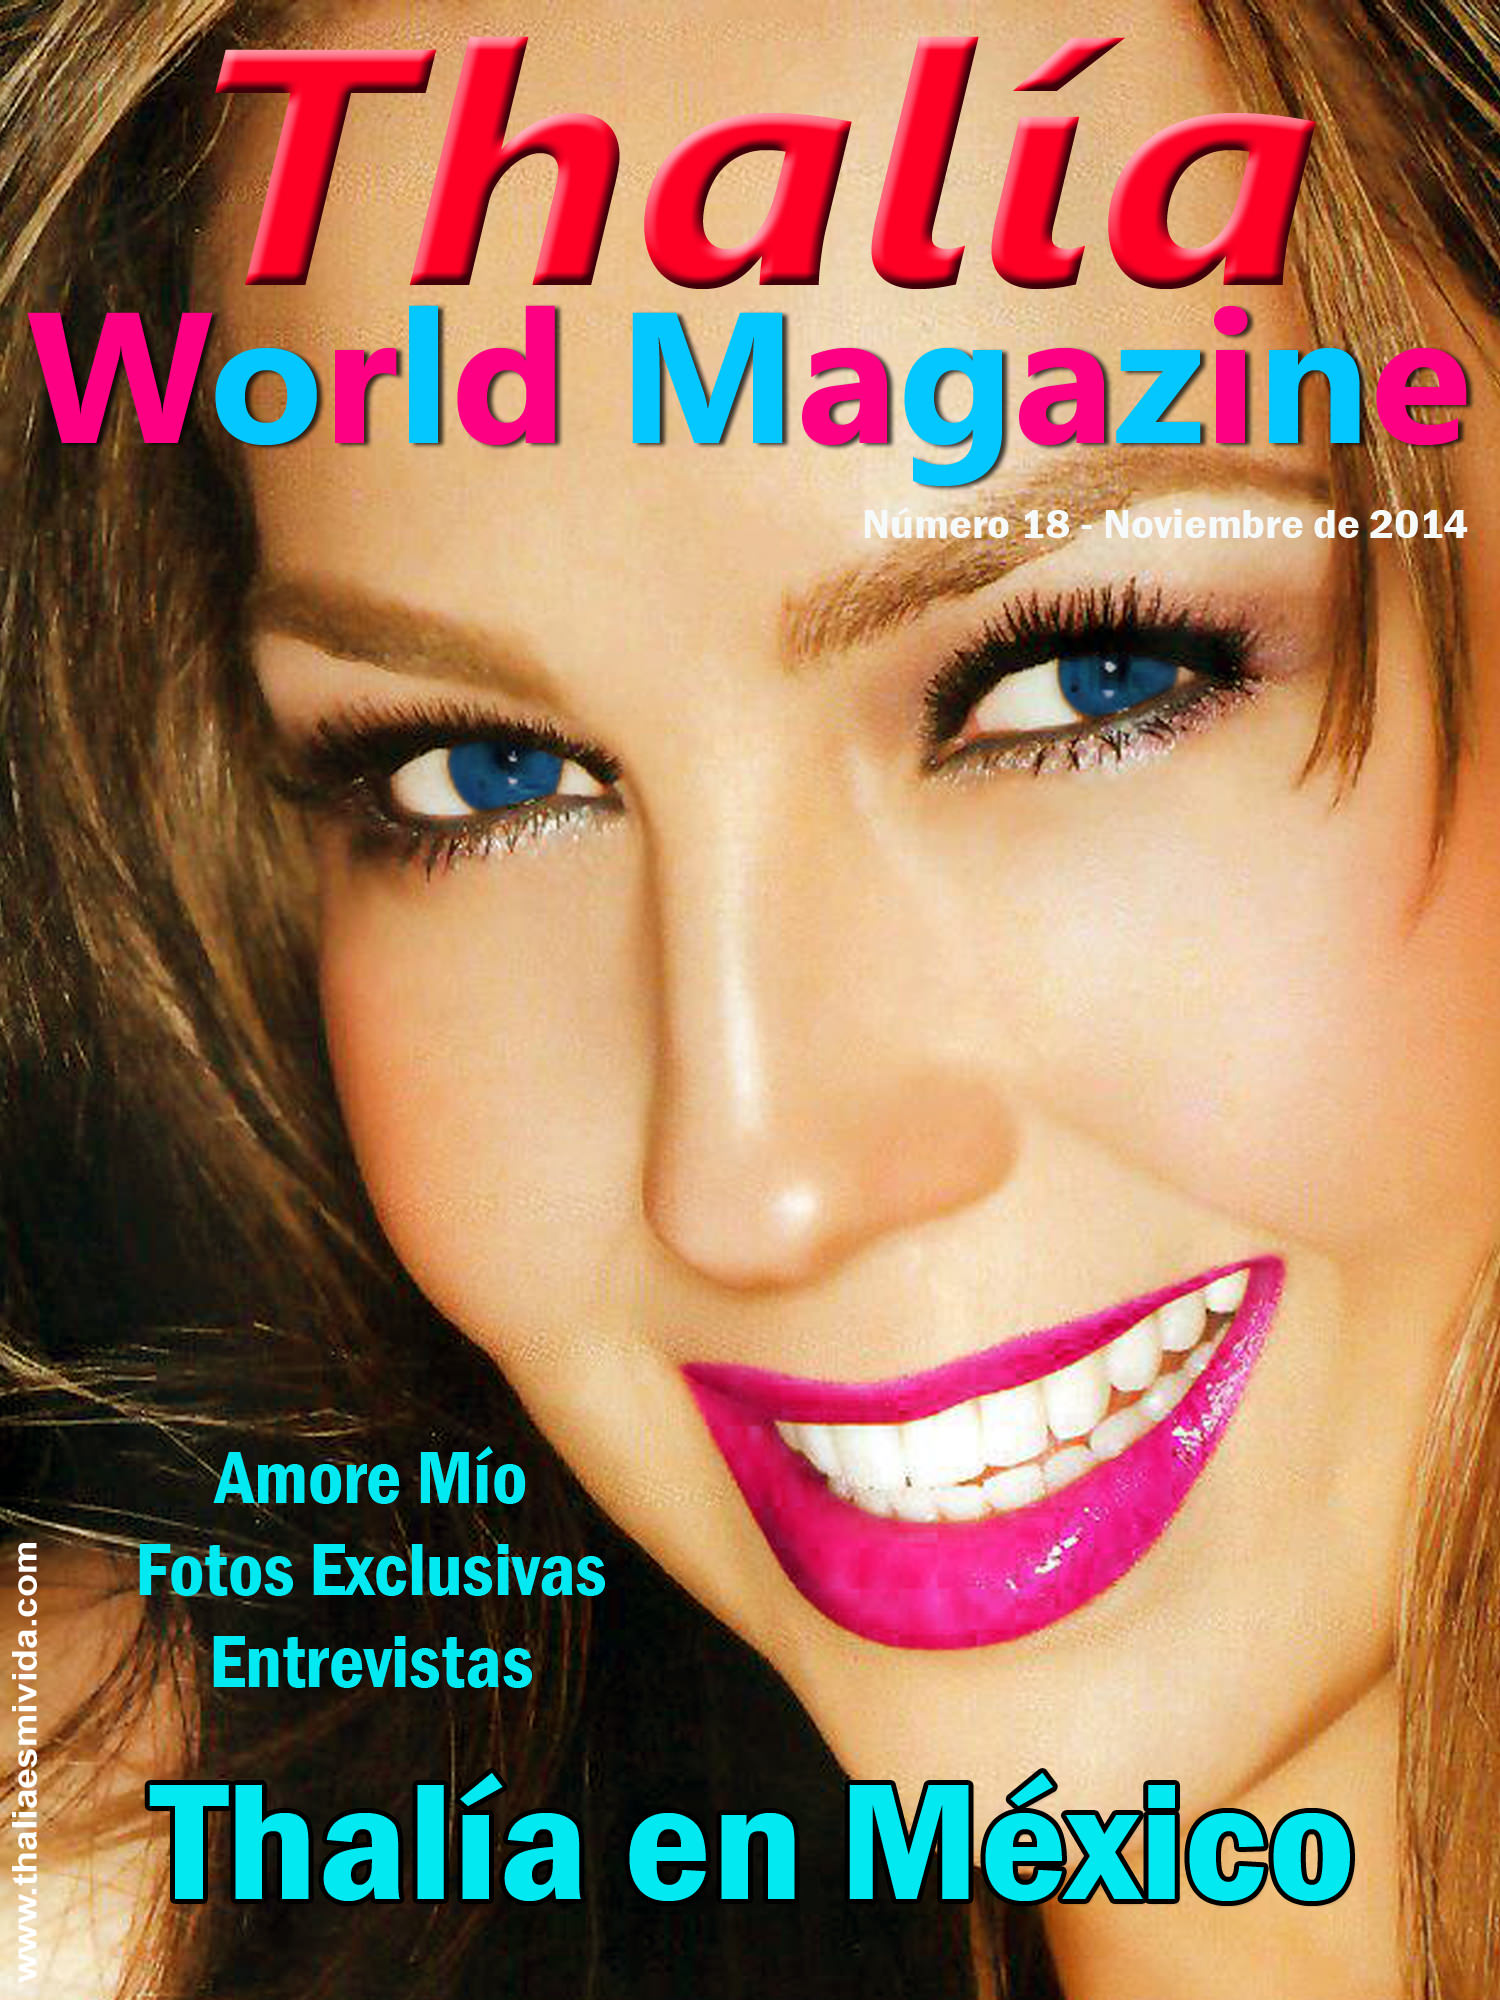 Thalia World Magazine 18